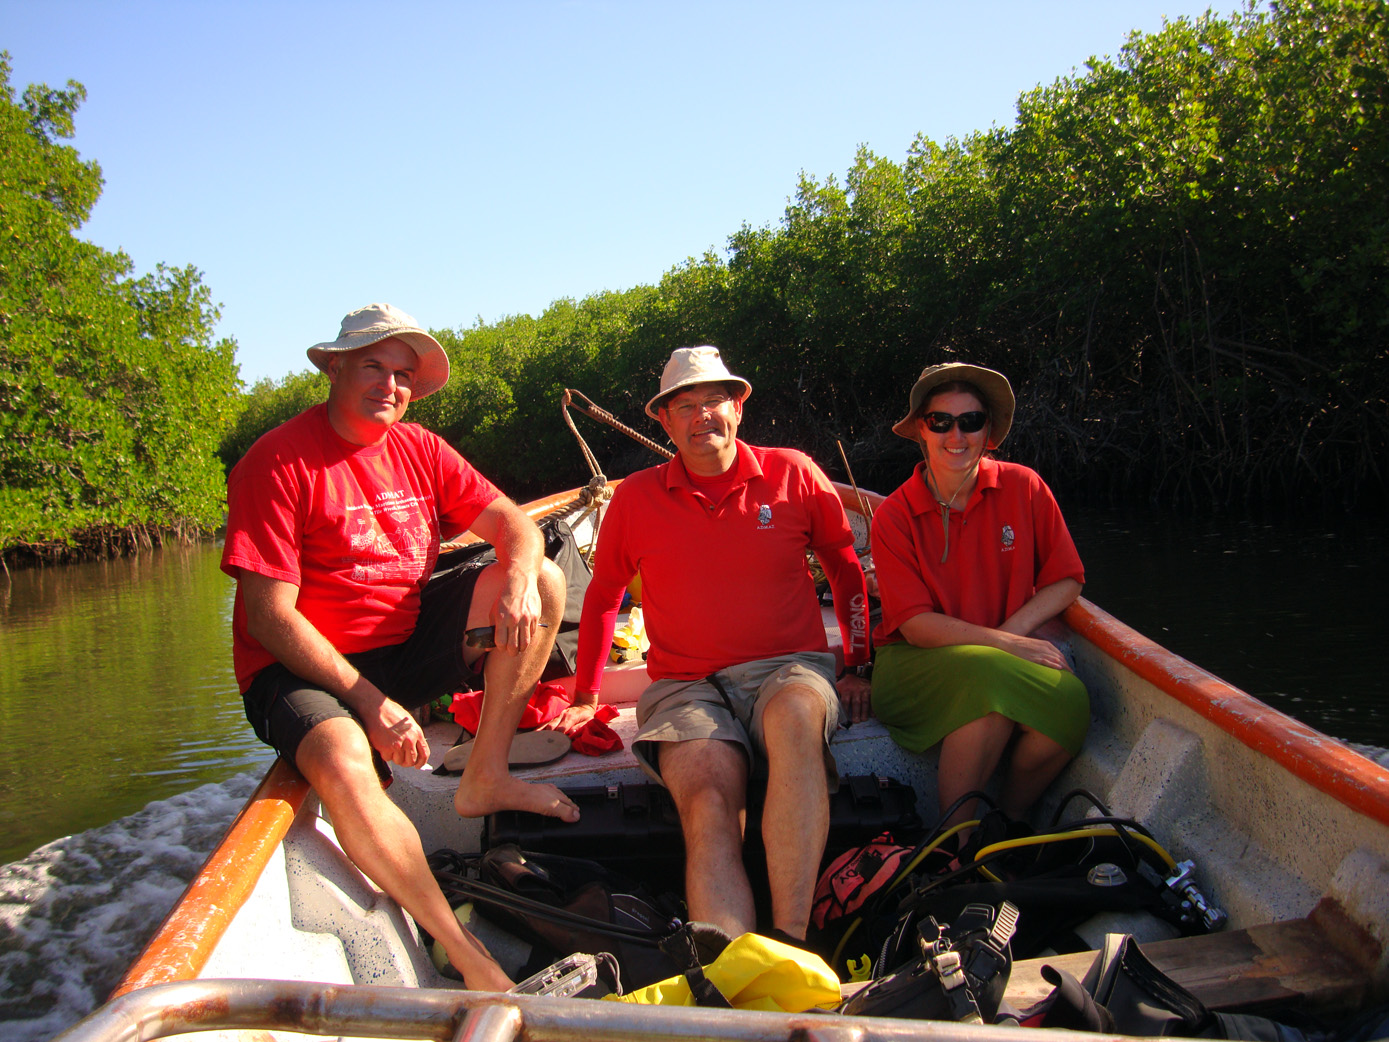 Raimund Krob, Dr Simon Spooner and Nikki Bose on the way to   The Tile Wreck   in 2013